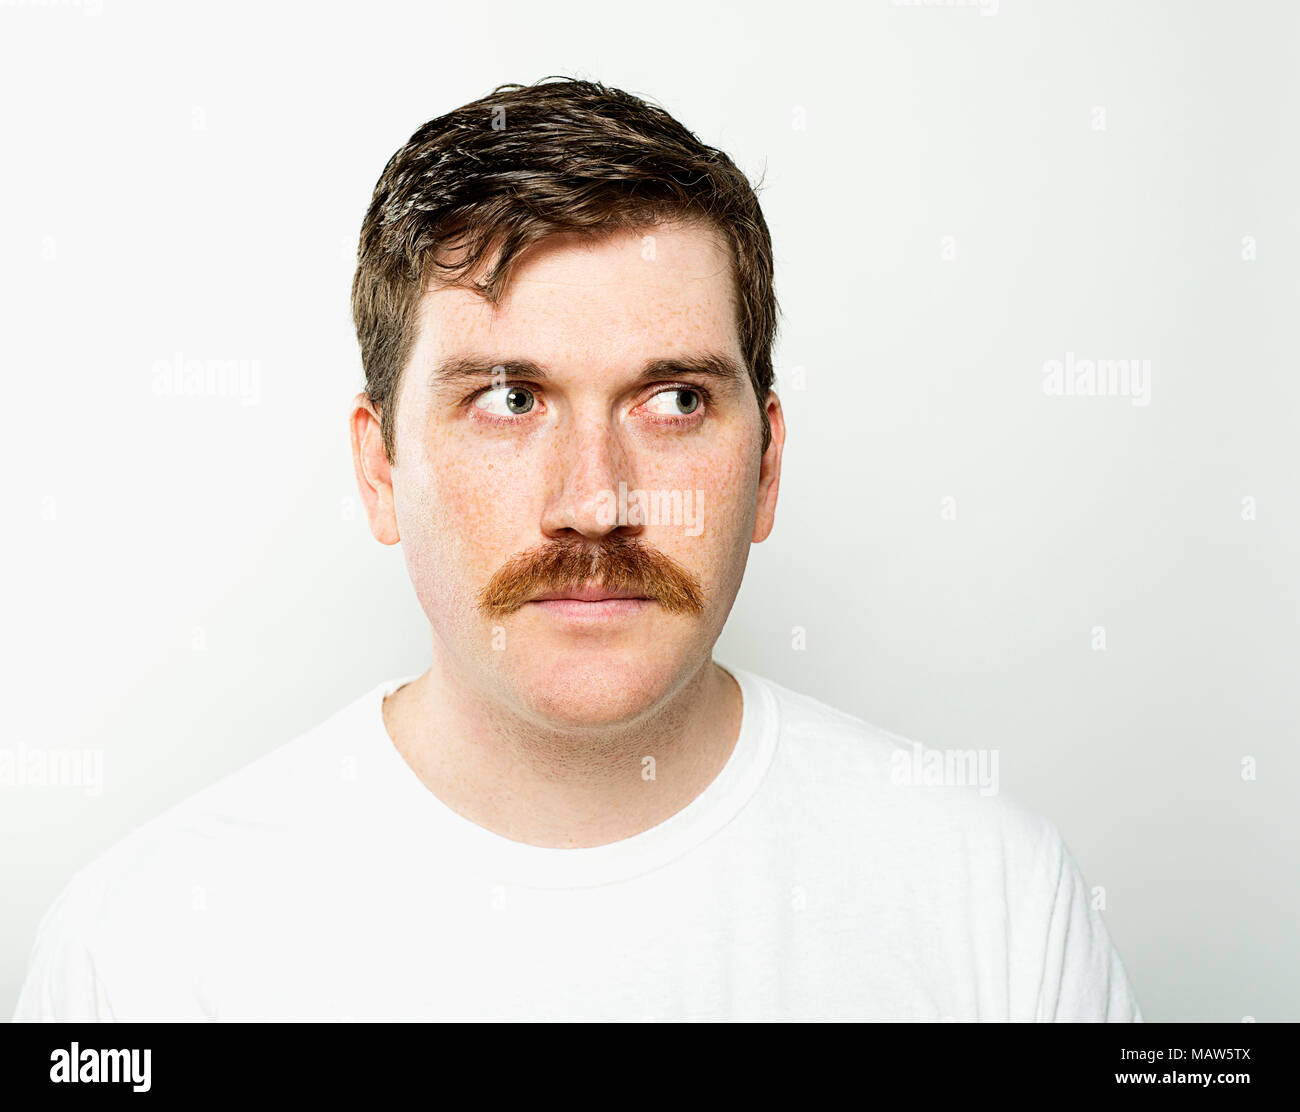 A man with freckles side eyeing. - Stock Image